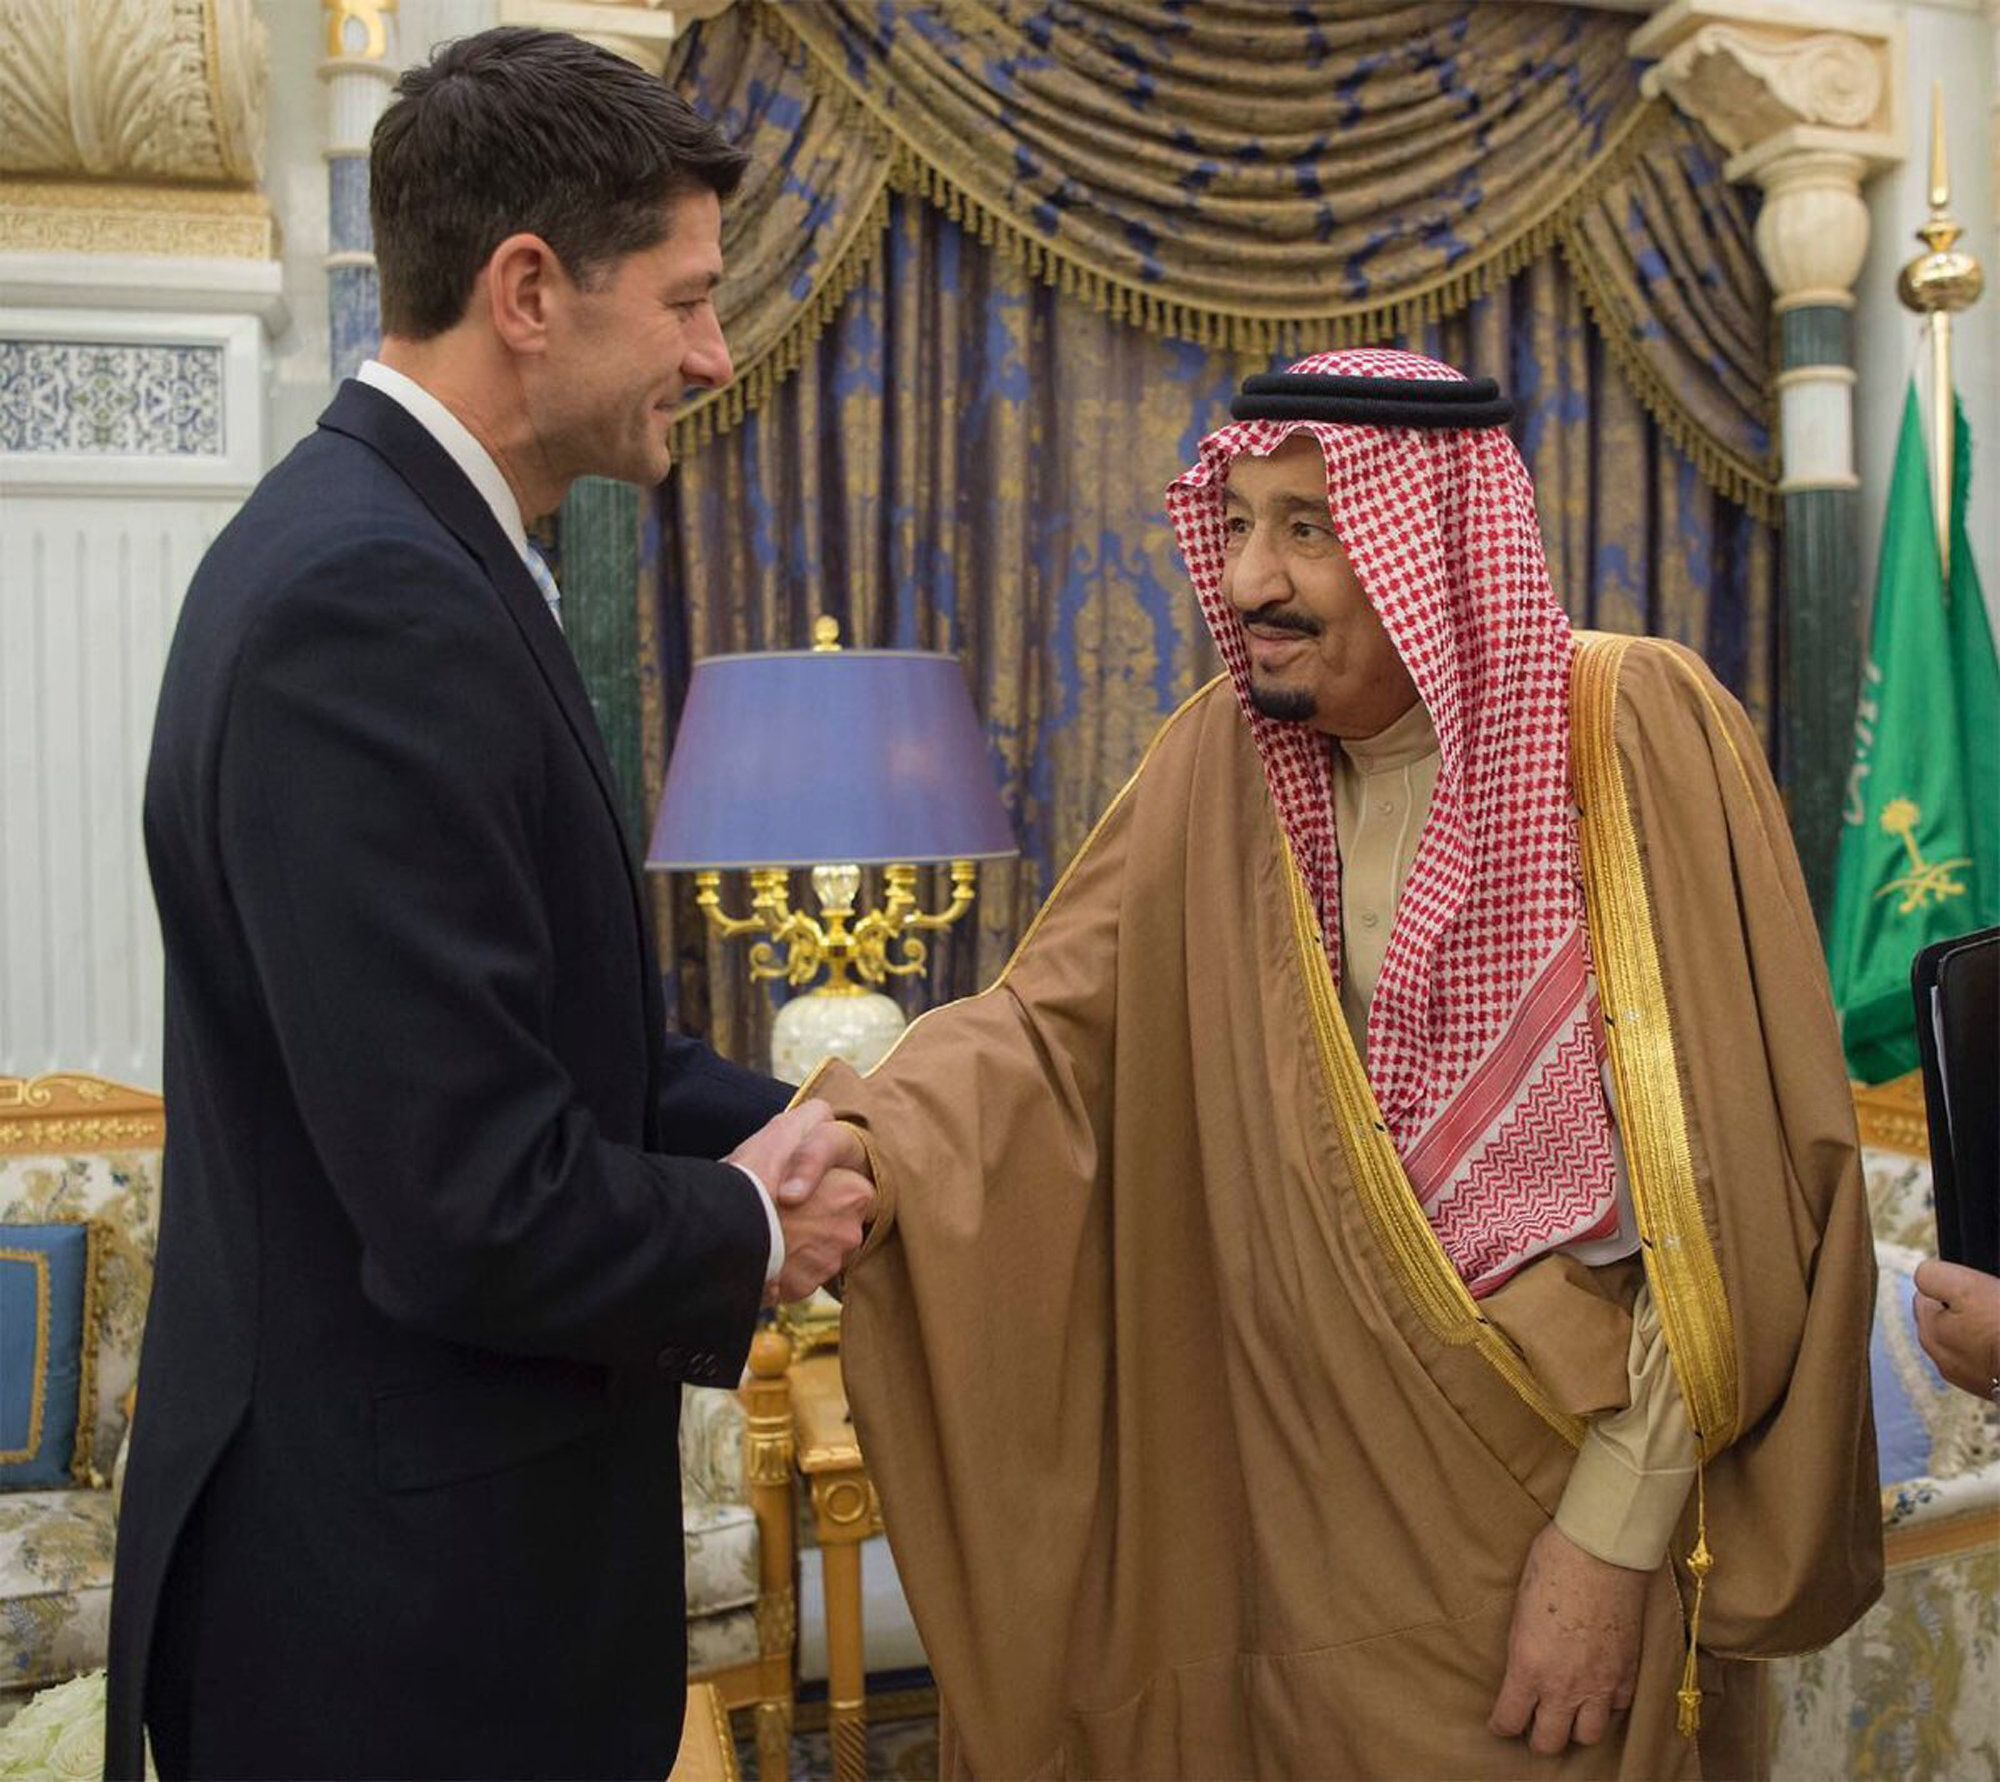 """Saudi King Salman shakes hands with the U.S. House Speaker Paul Ryan, in Riyadh, Saudi Arabia, Wednesday, Jan. 24, 2018.  Ryan is leading a Congressional delegation to the Middle East, traveling with five Republican members of congress and one Democrat. A statement by Ryan's office says his talks in the Middle East """"will focus on regional stability, the campaign against ISIS and terrorism, and Iranian aggression."""" (Saudi Press Agency via AP)"""